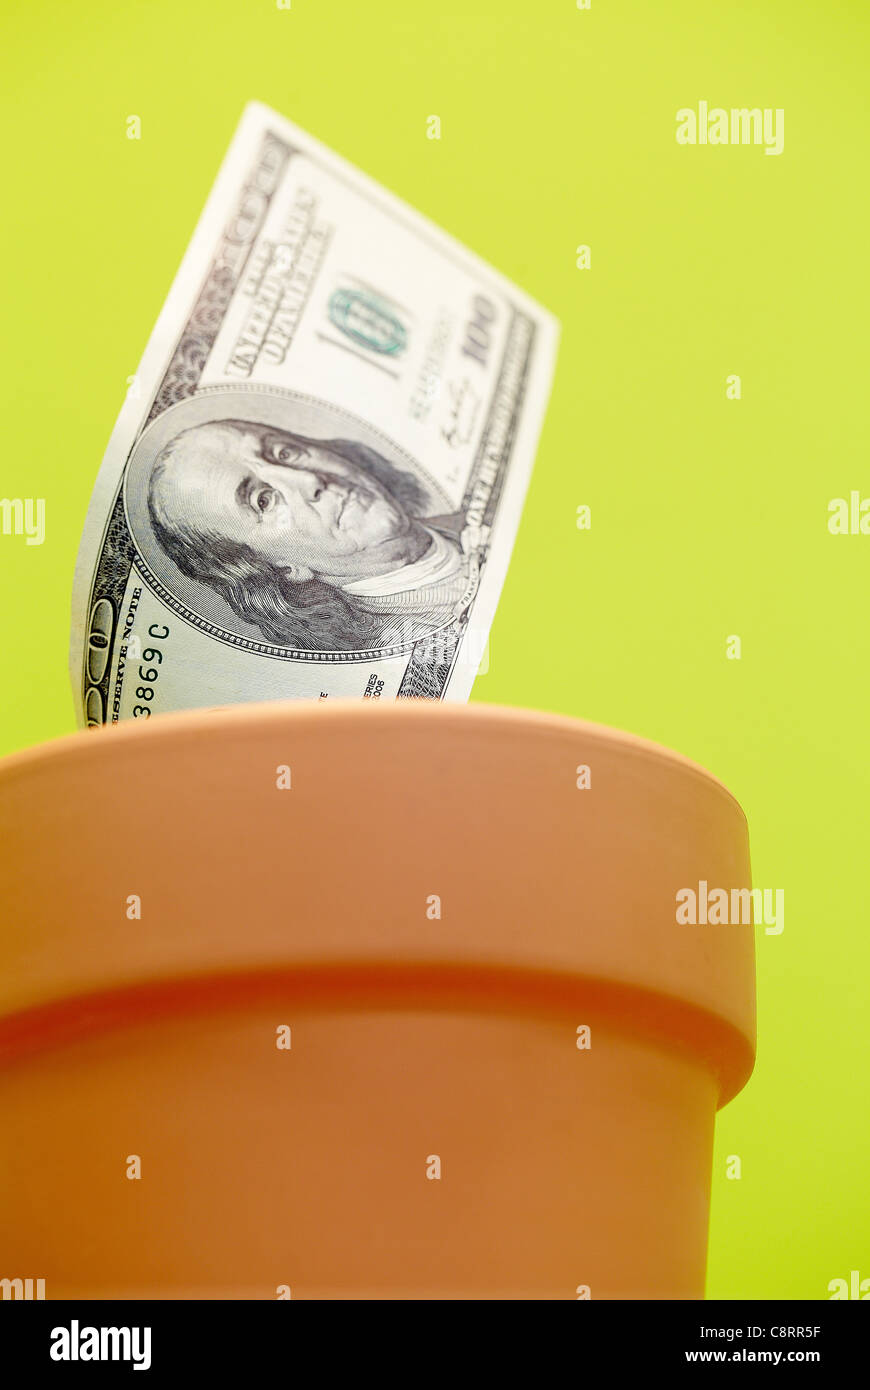 Close-up of one hundred dollar bill on flower pot - Stock Image